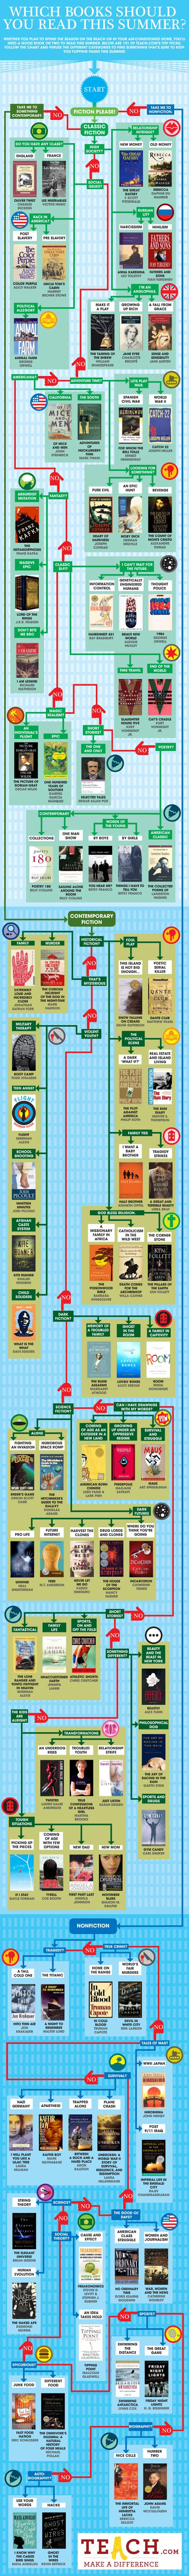 A swanky infographic featured on Daily Infographic, breaking down the various types of books you might like to read this summer